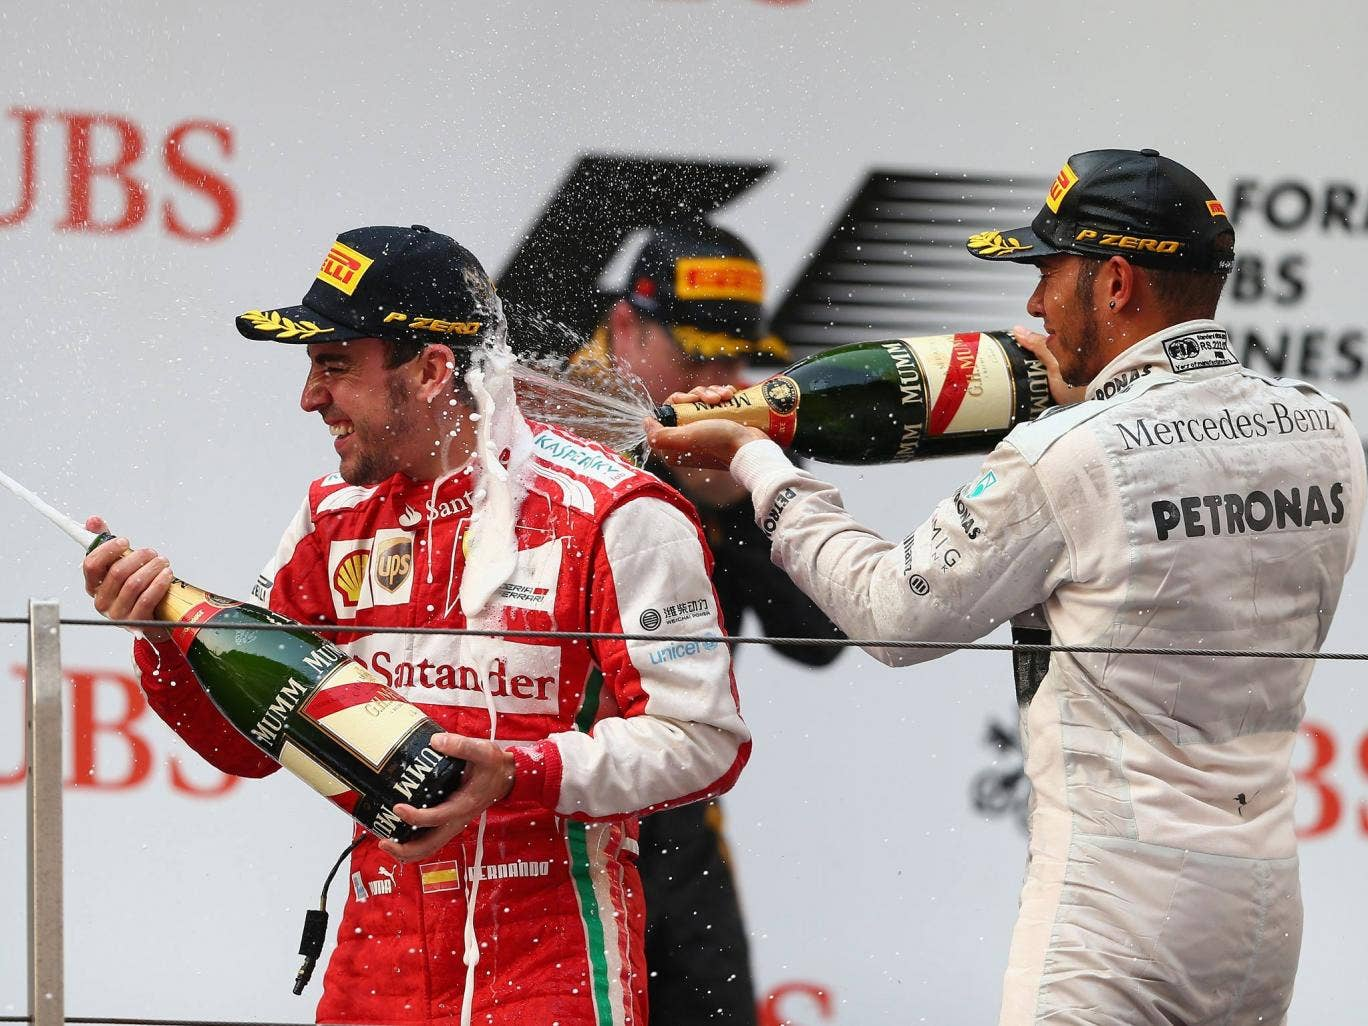 Fernando Alonso celebrates victory at the Chinese Grand Prix